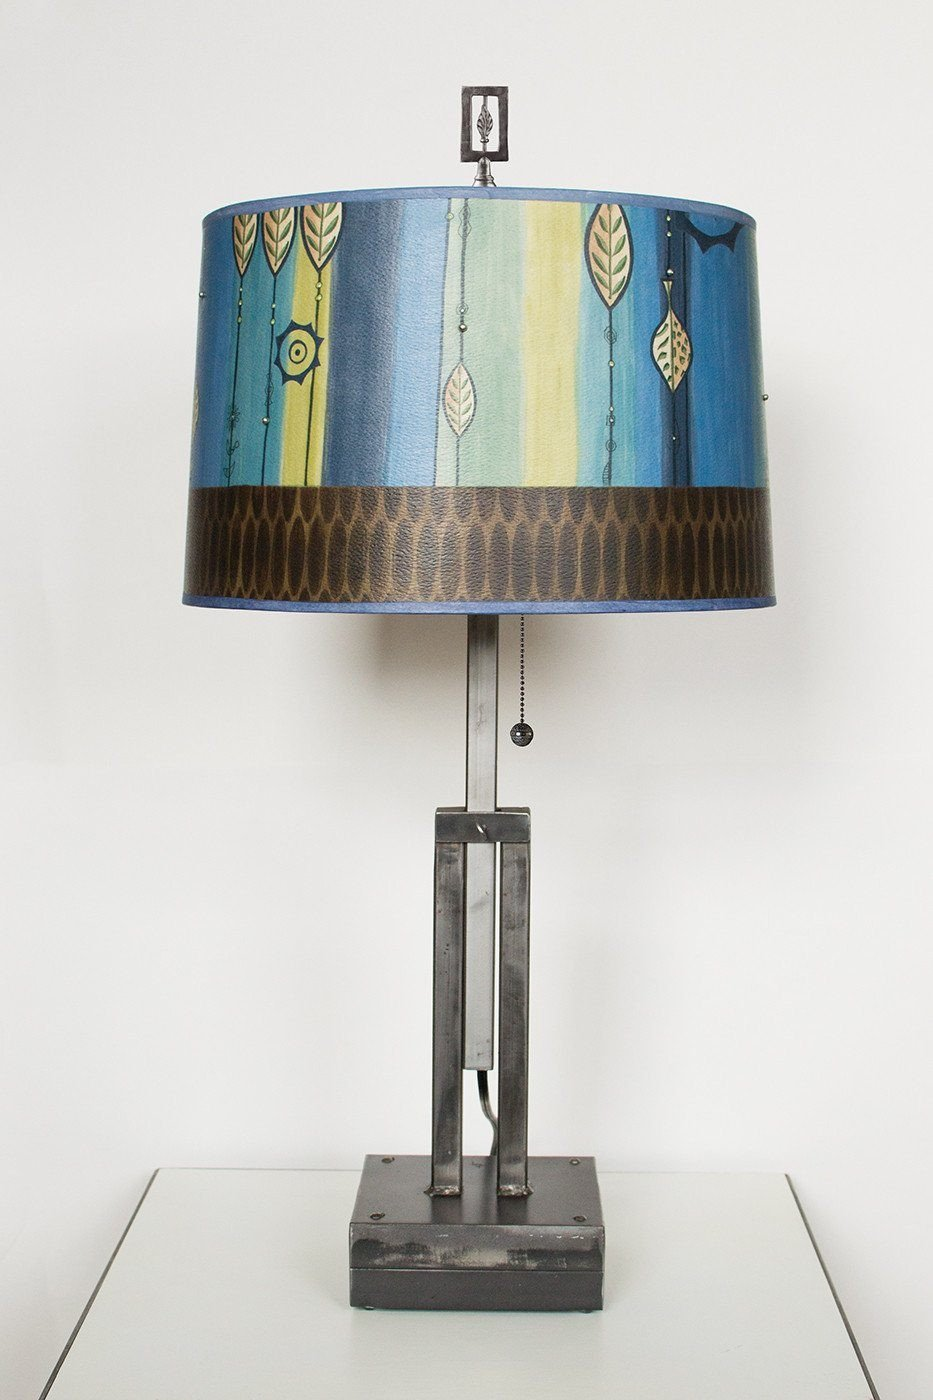 Adjustable-Height Steel Table Lamp with Large Drum Shade in Leaf Stripe Blues